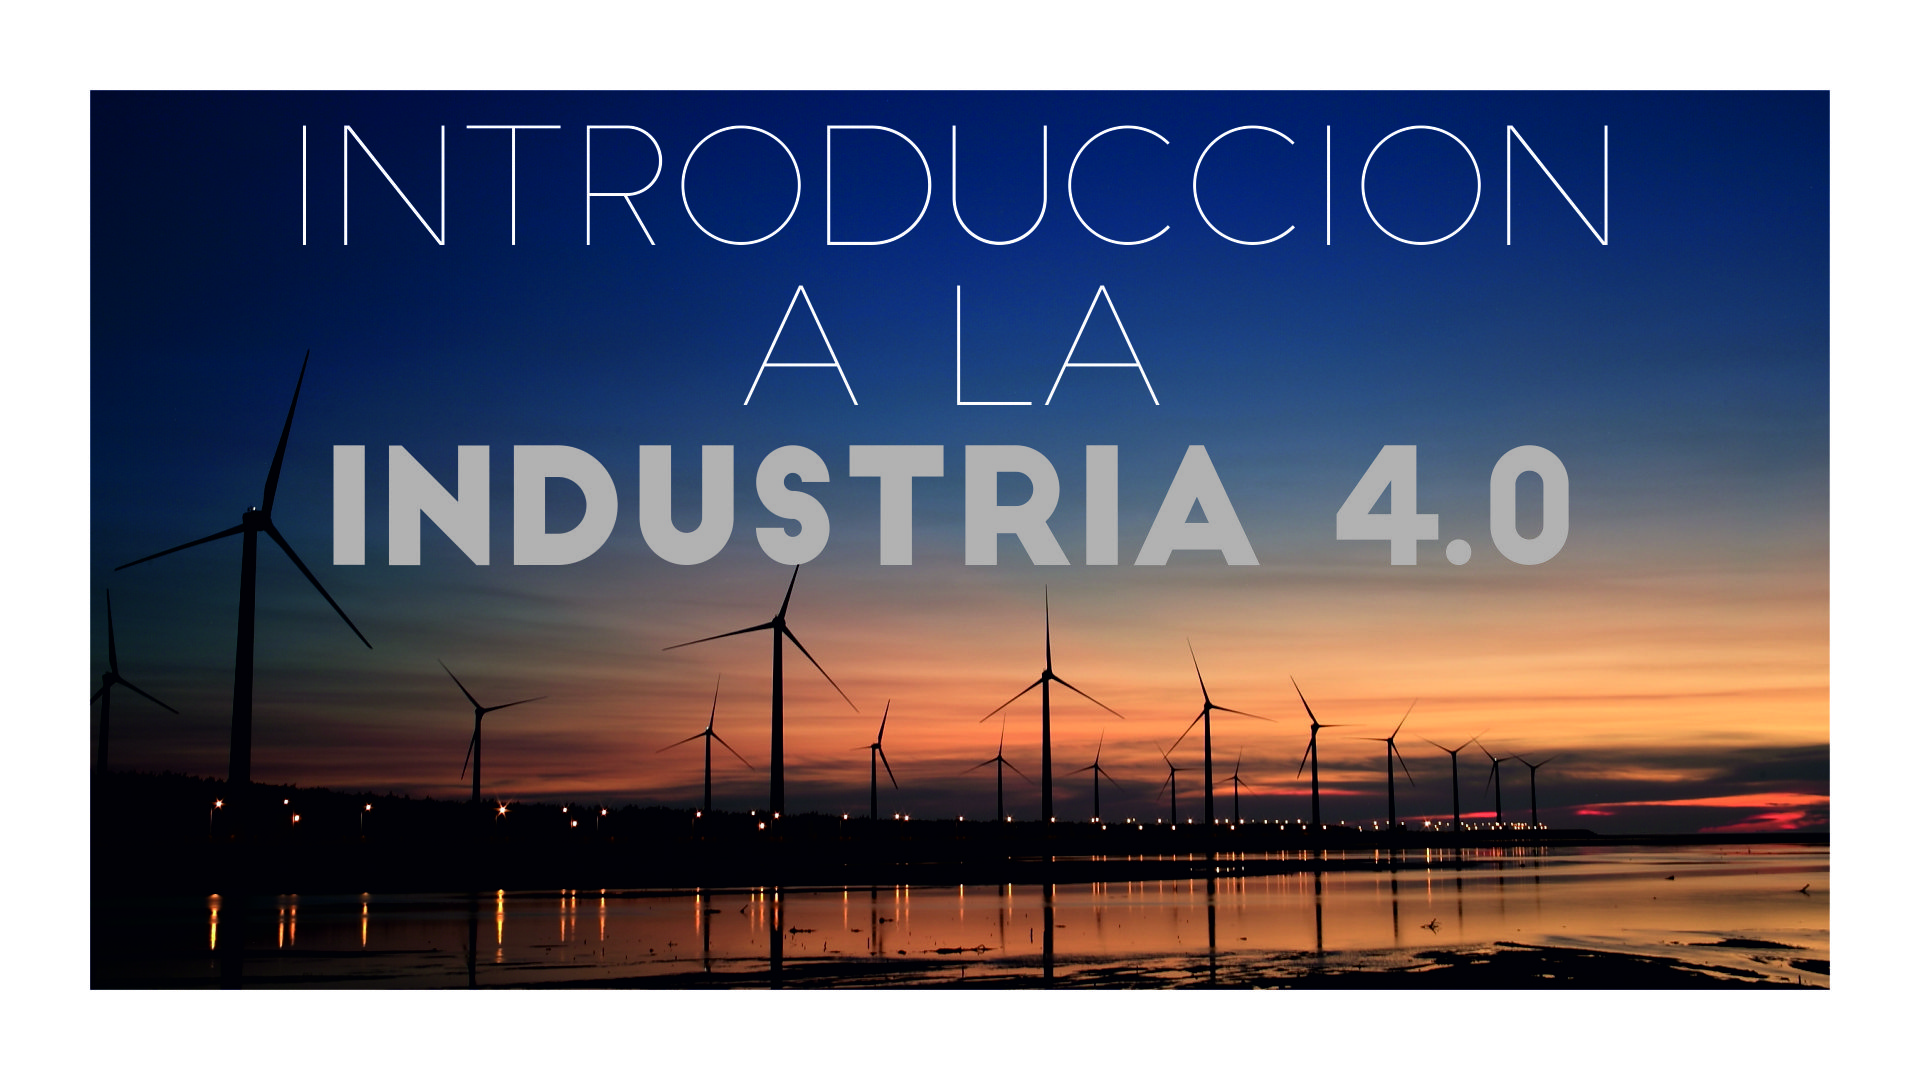 introduccion industria 4.0